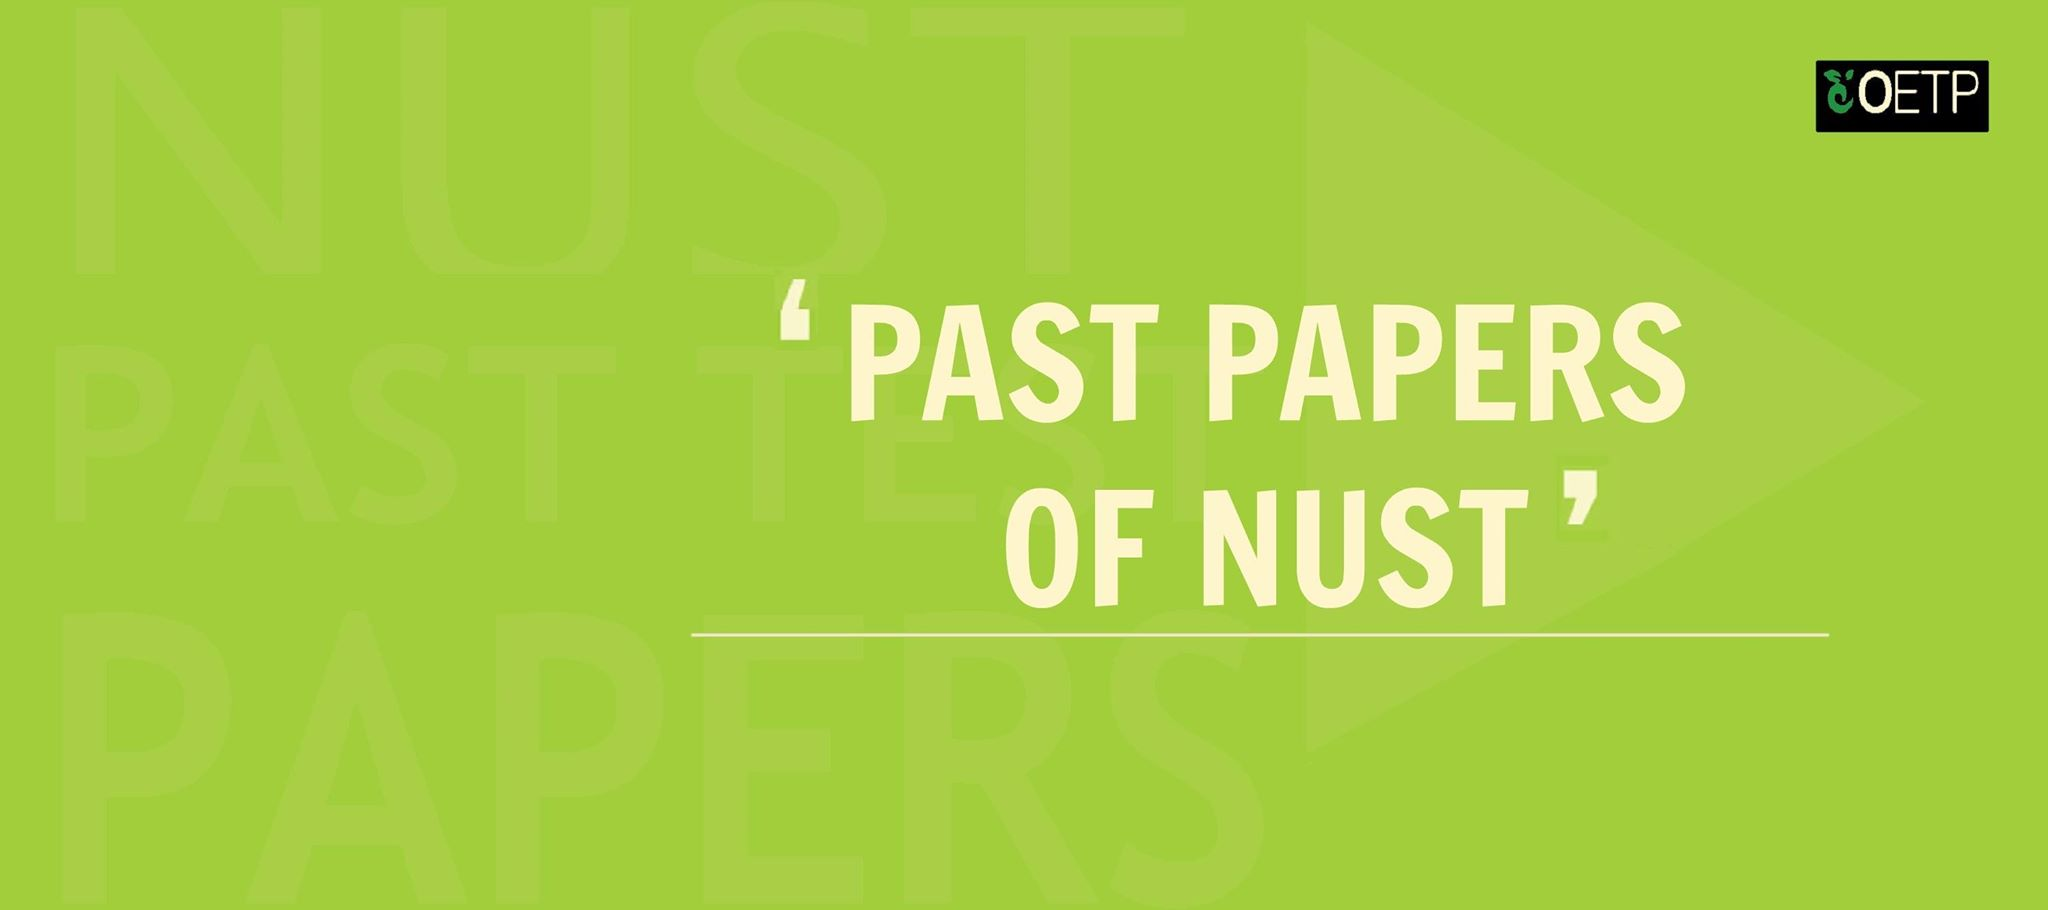 Solved Past Papers of NUST Entry Test - OETP